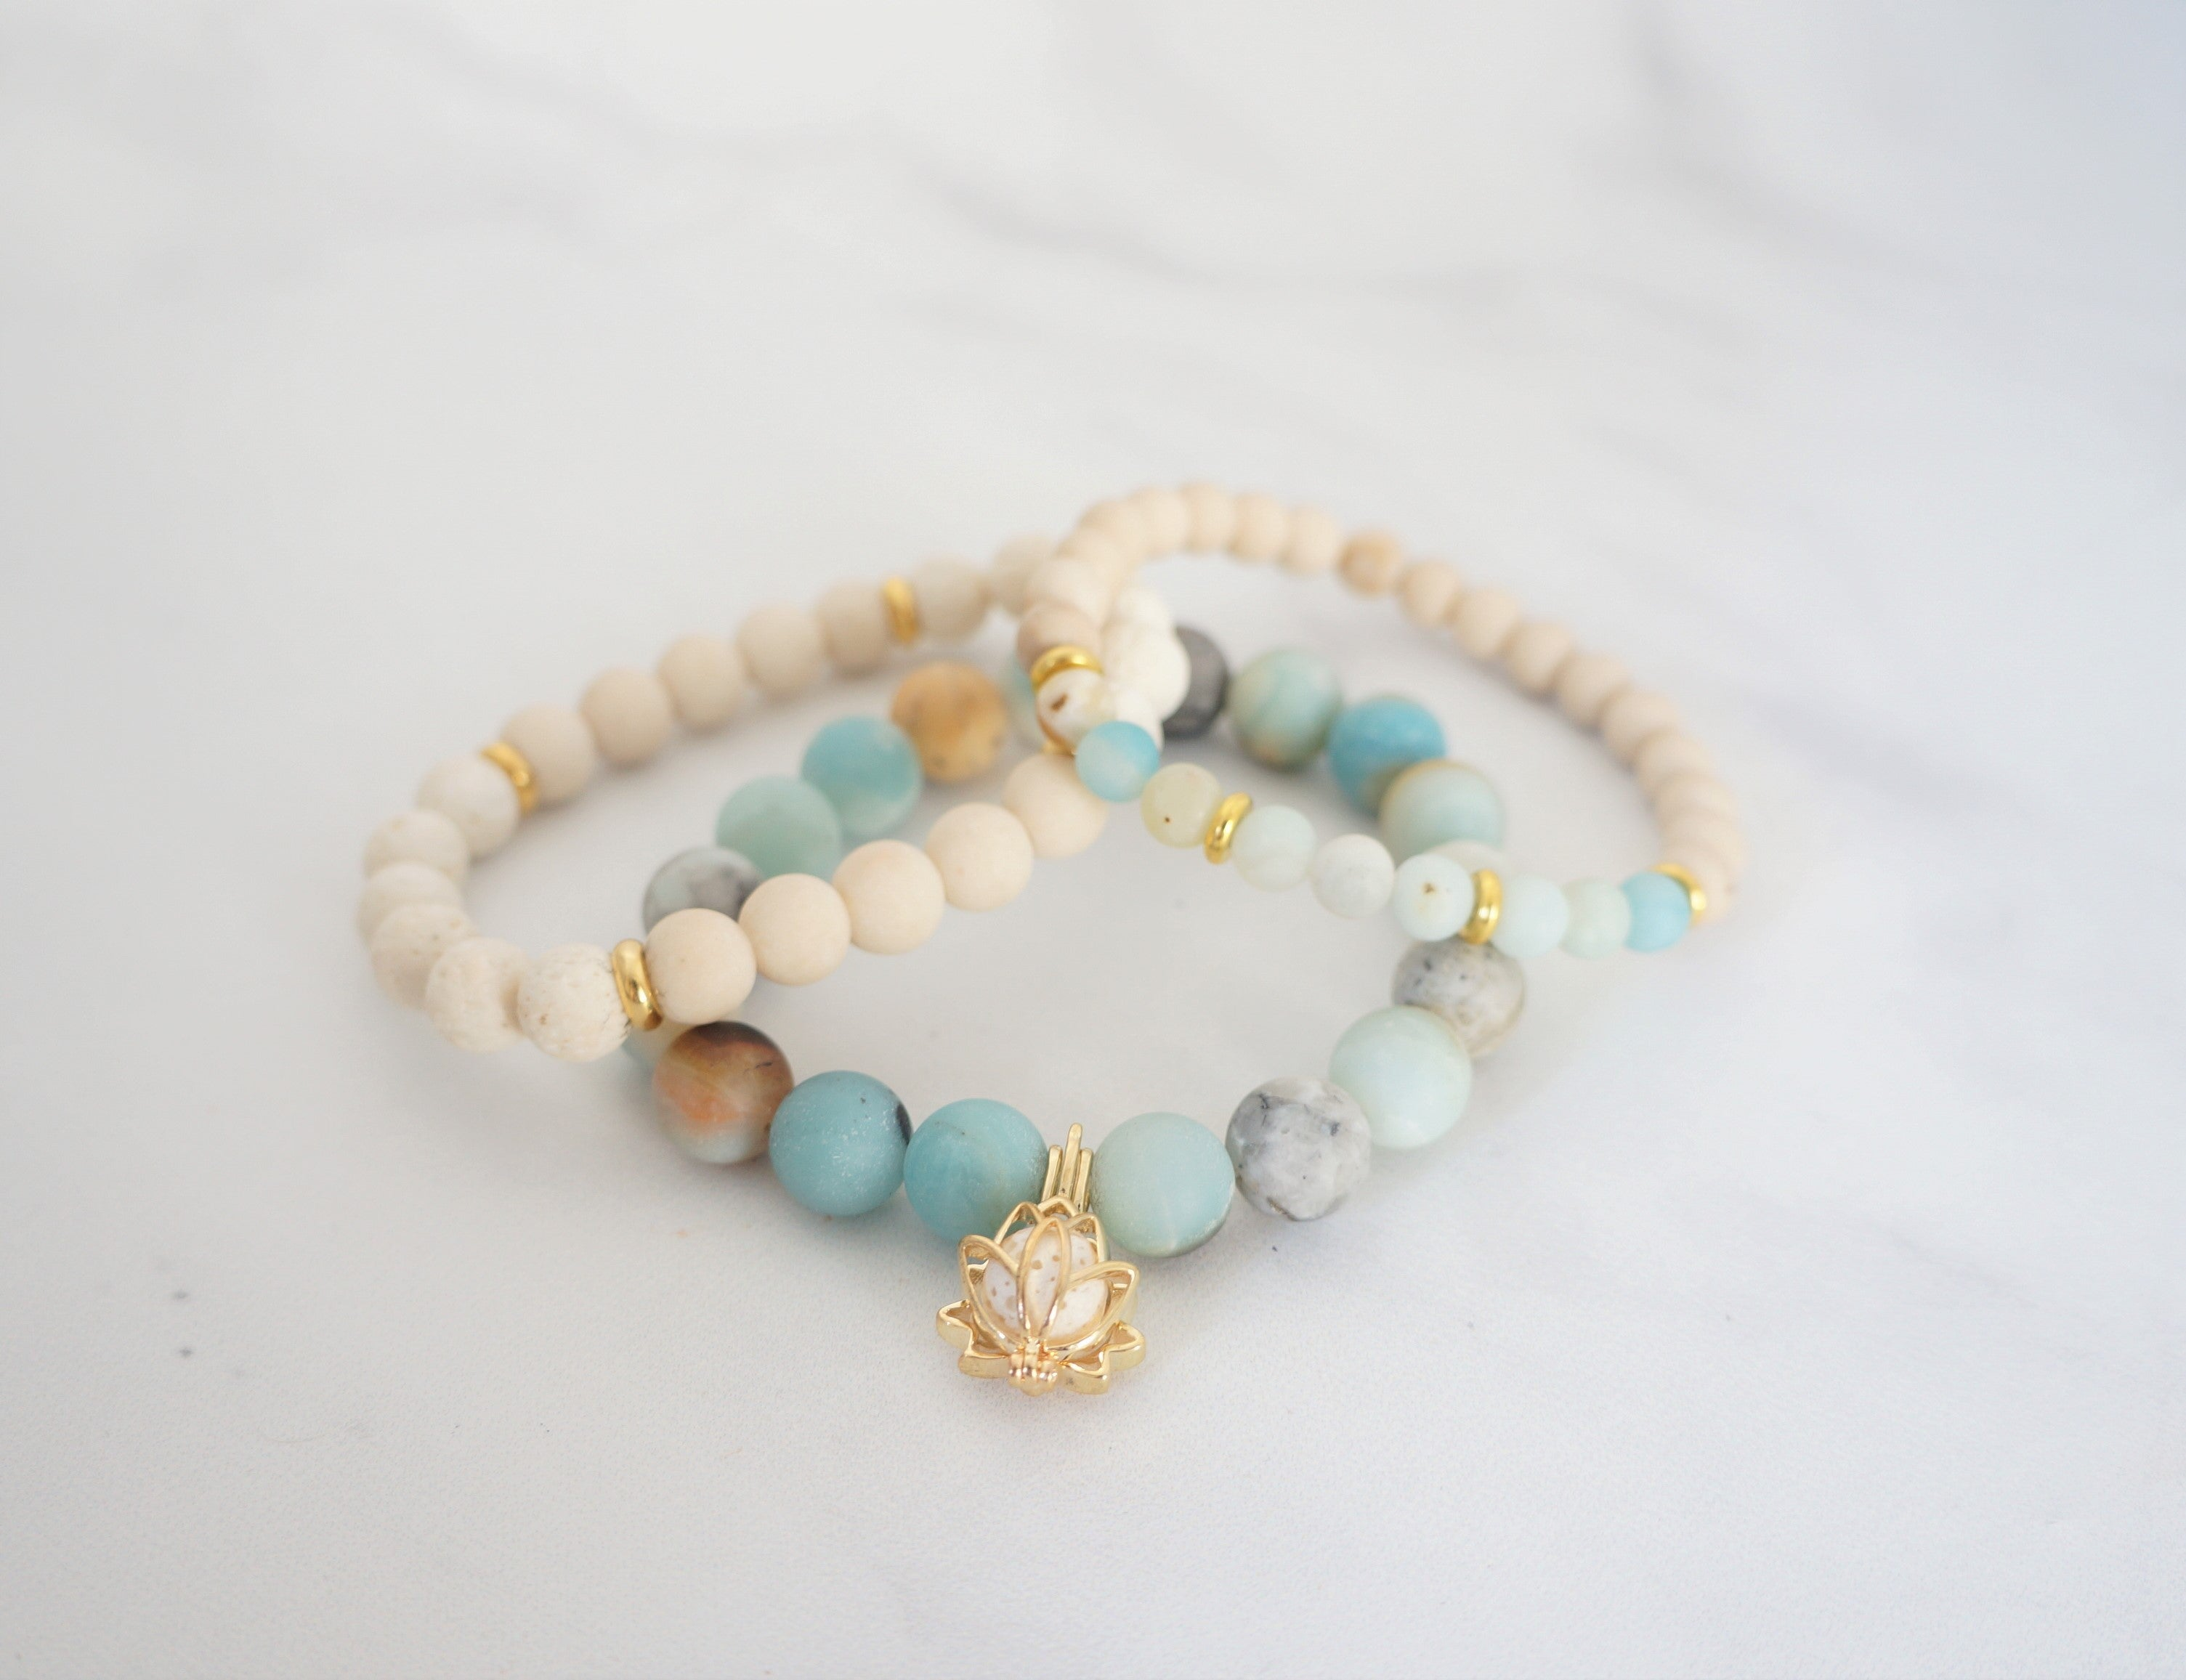 Manifestation Stack - Carolyn Hearn Designs